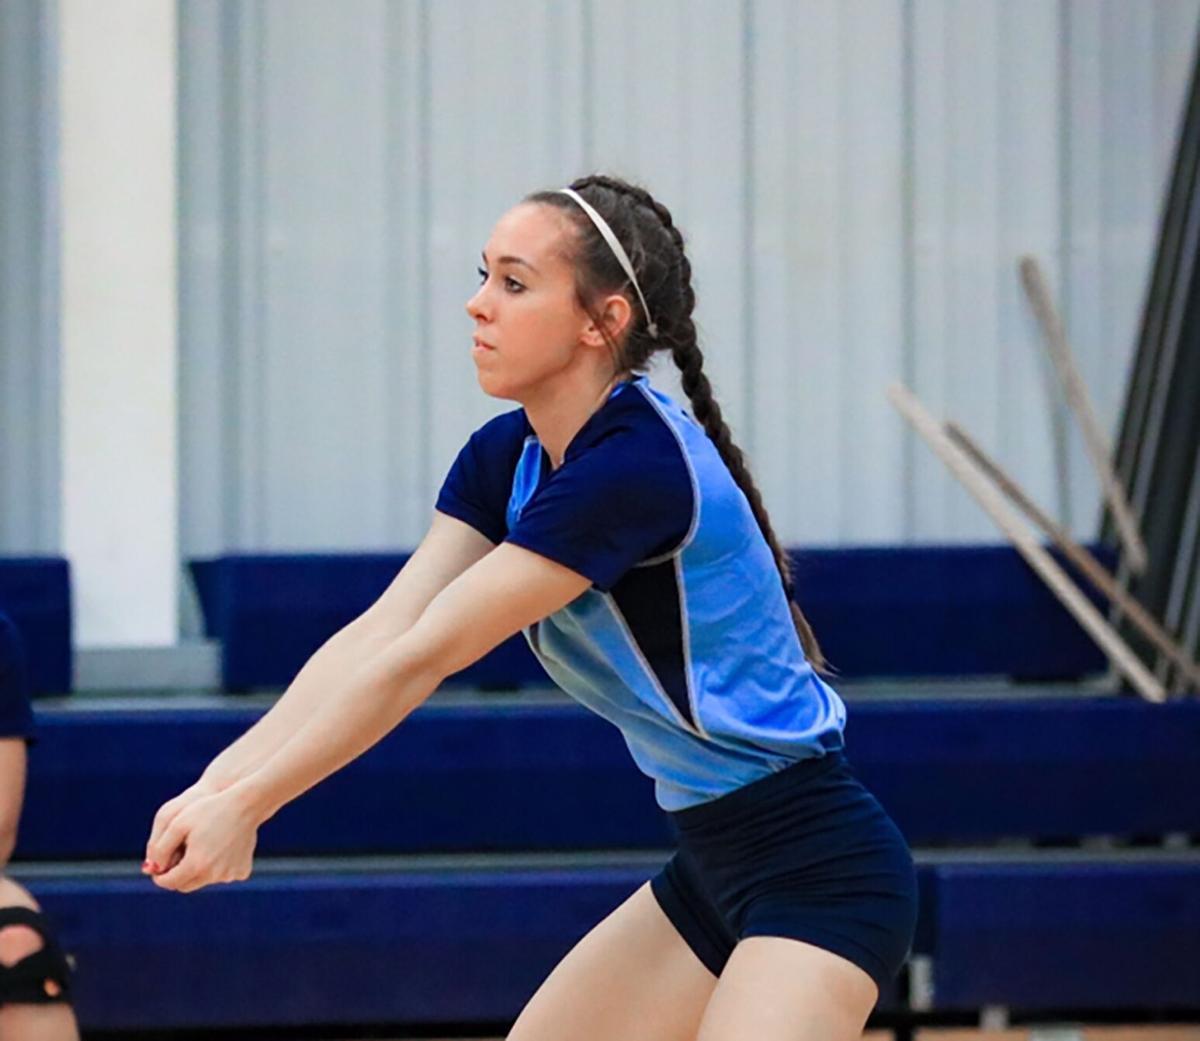 Plainview's Trotter finds fit with volleyball